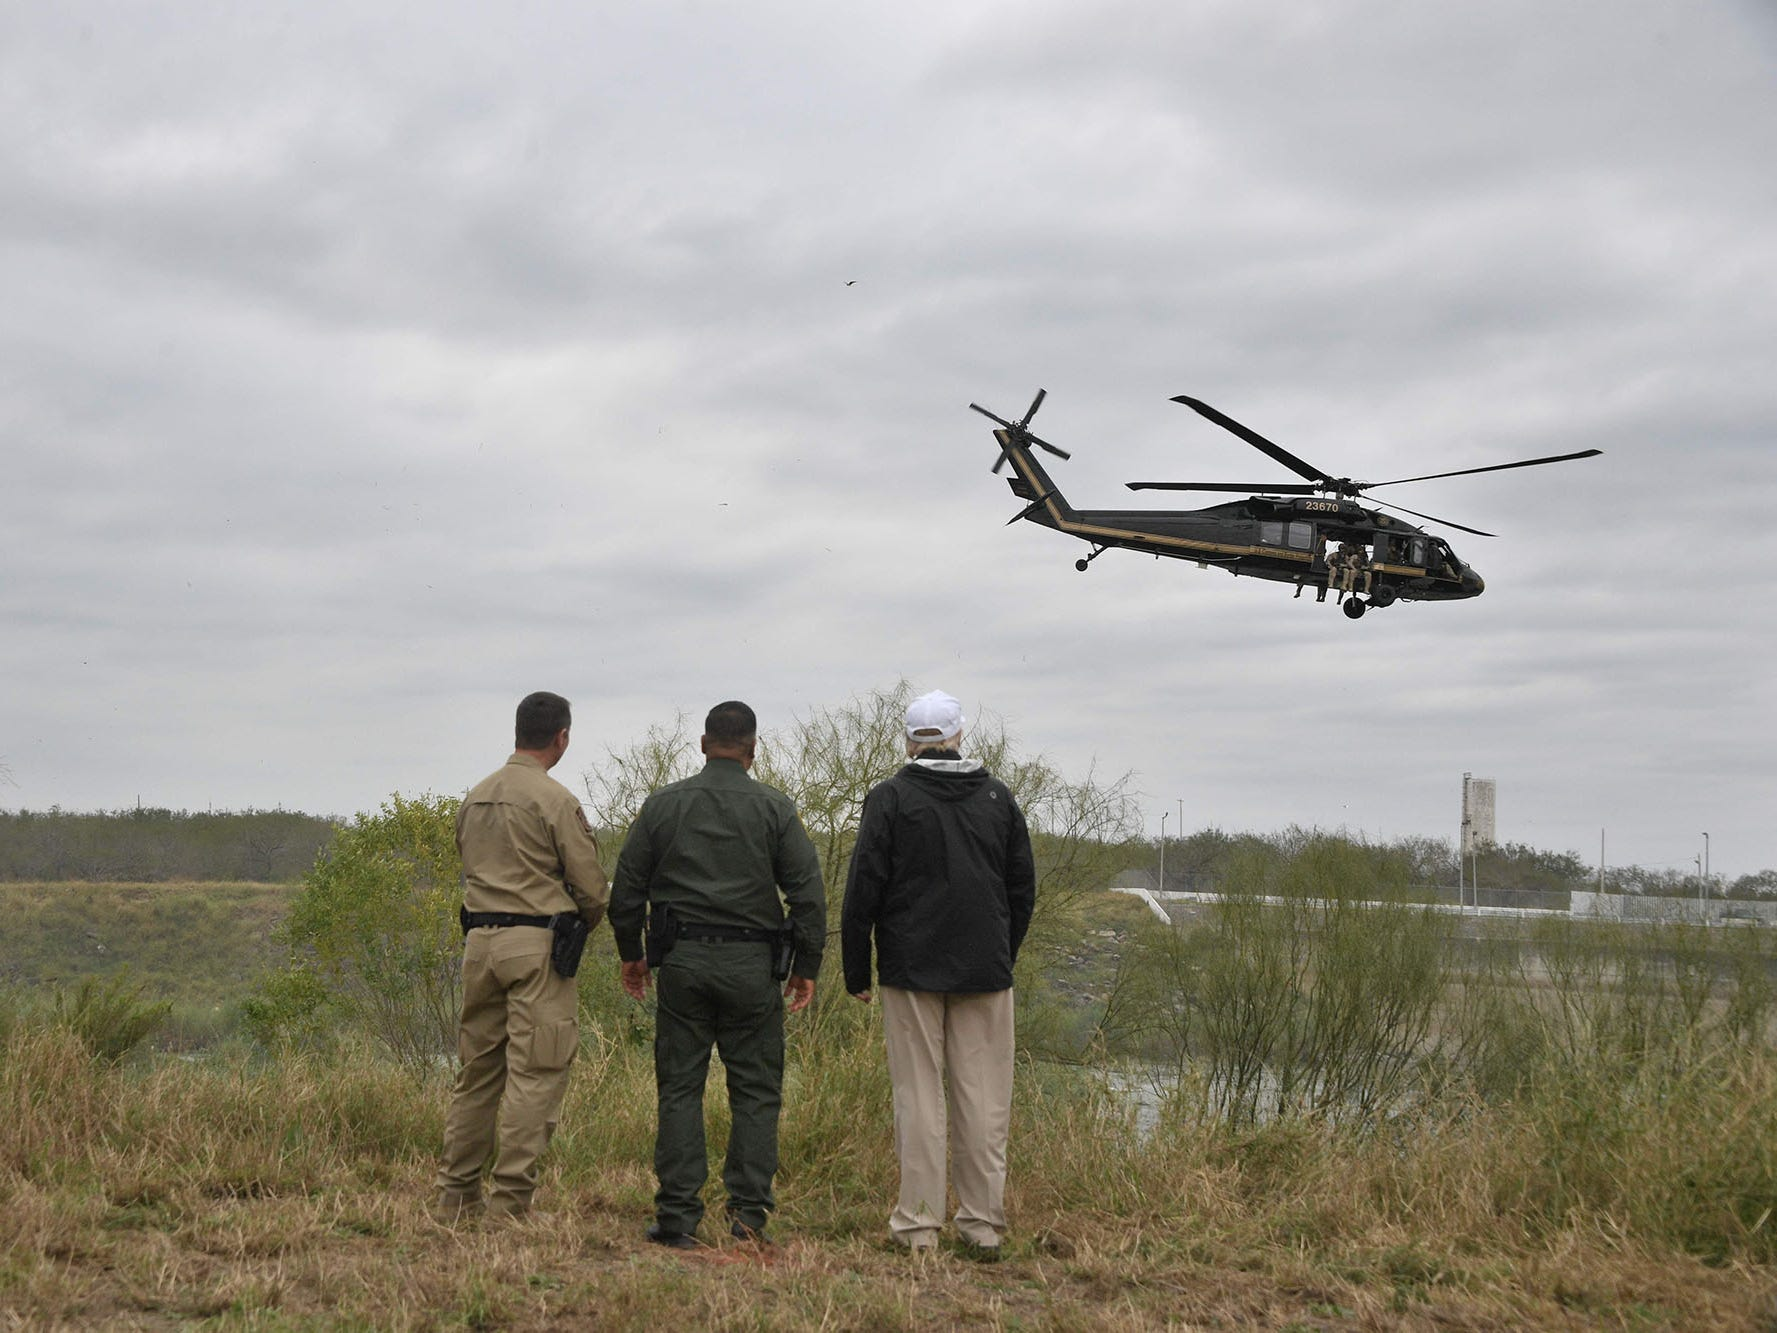 President Donald Trump stands with Border Patrol agents at the Rio Grande after his visit to US Border Patrol McAllen Station in McAllen, Texas, on Jan. 10, 2019. Trump traveled to the US-Mexico border as part of his all-out offensive to build a wall, a day after he stormed out of negotiations when Democratic opponents refused to agree to fund the project in exchange for an end to a painful government shutdown.